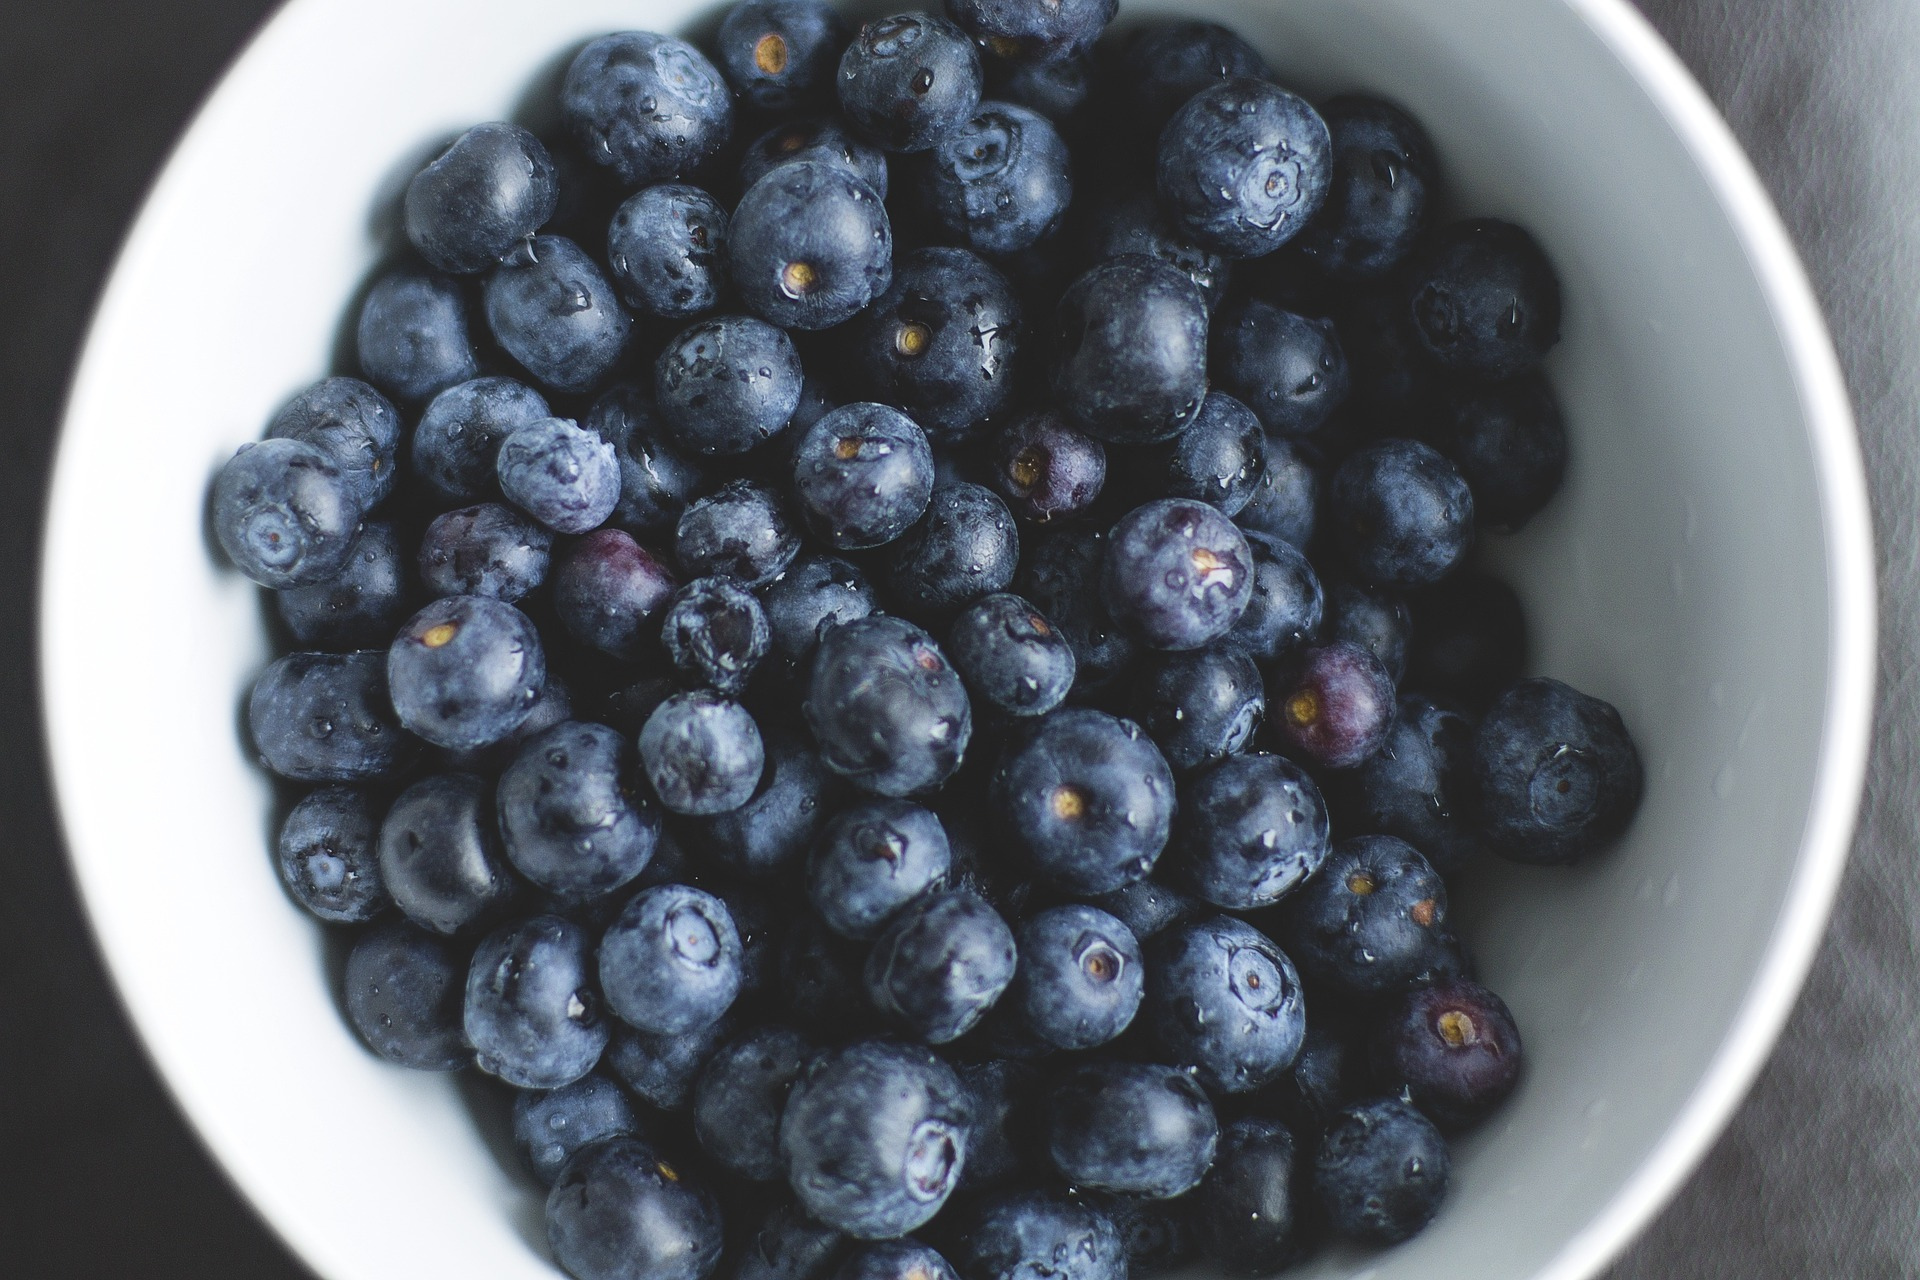 blueberries-1149861_1920